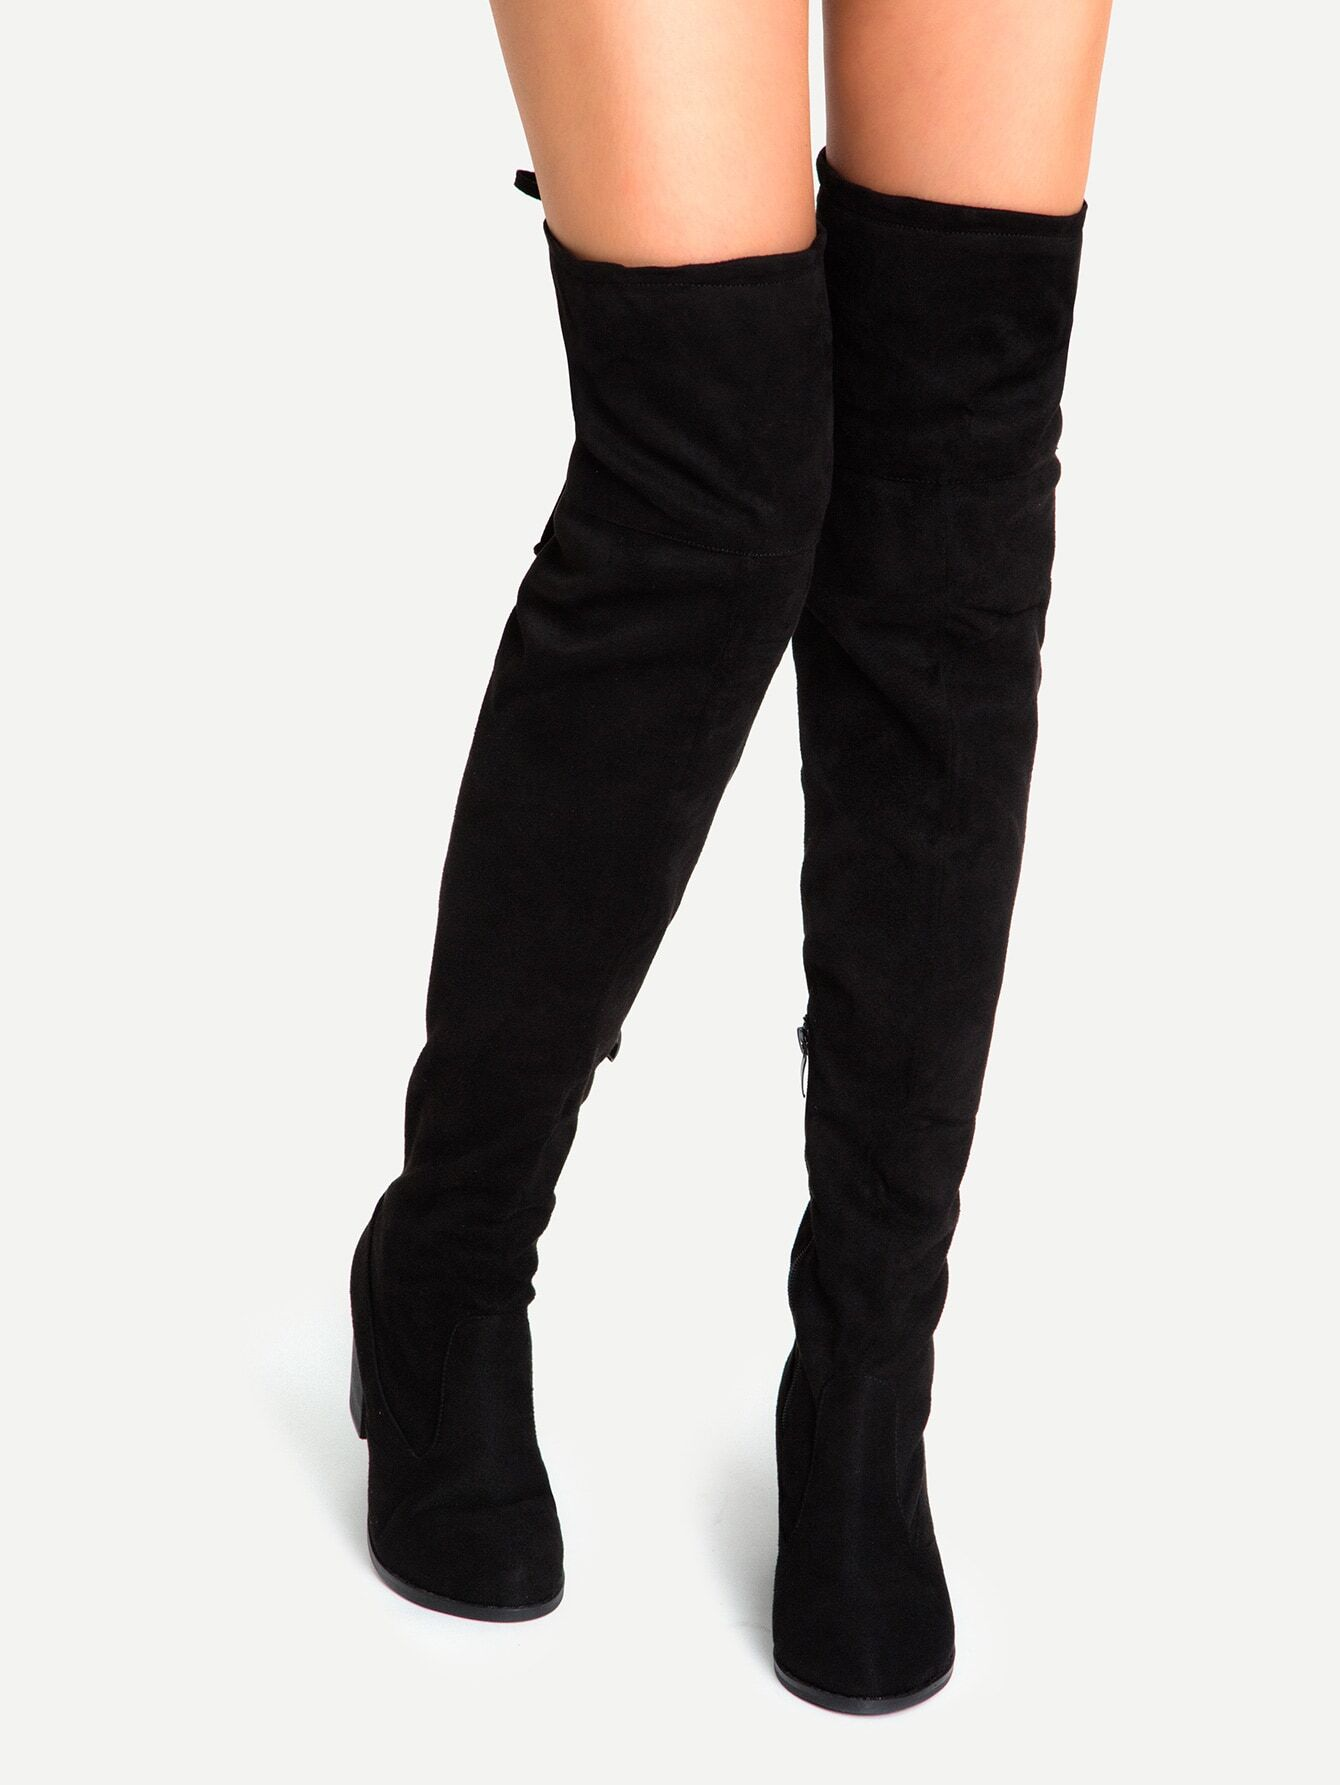 Black Suede Lace Up Over The Knee Boots -SheIn(Sheinside)